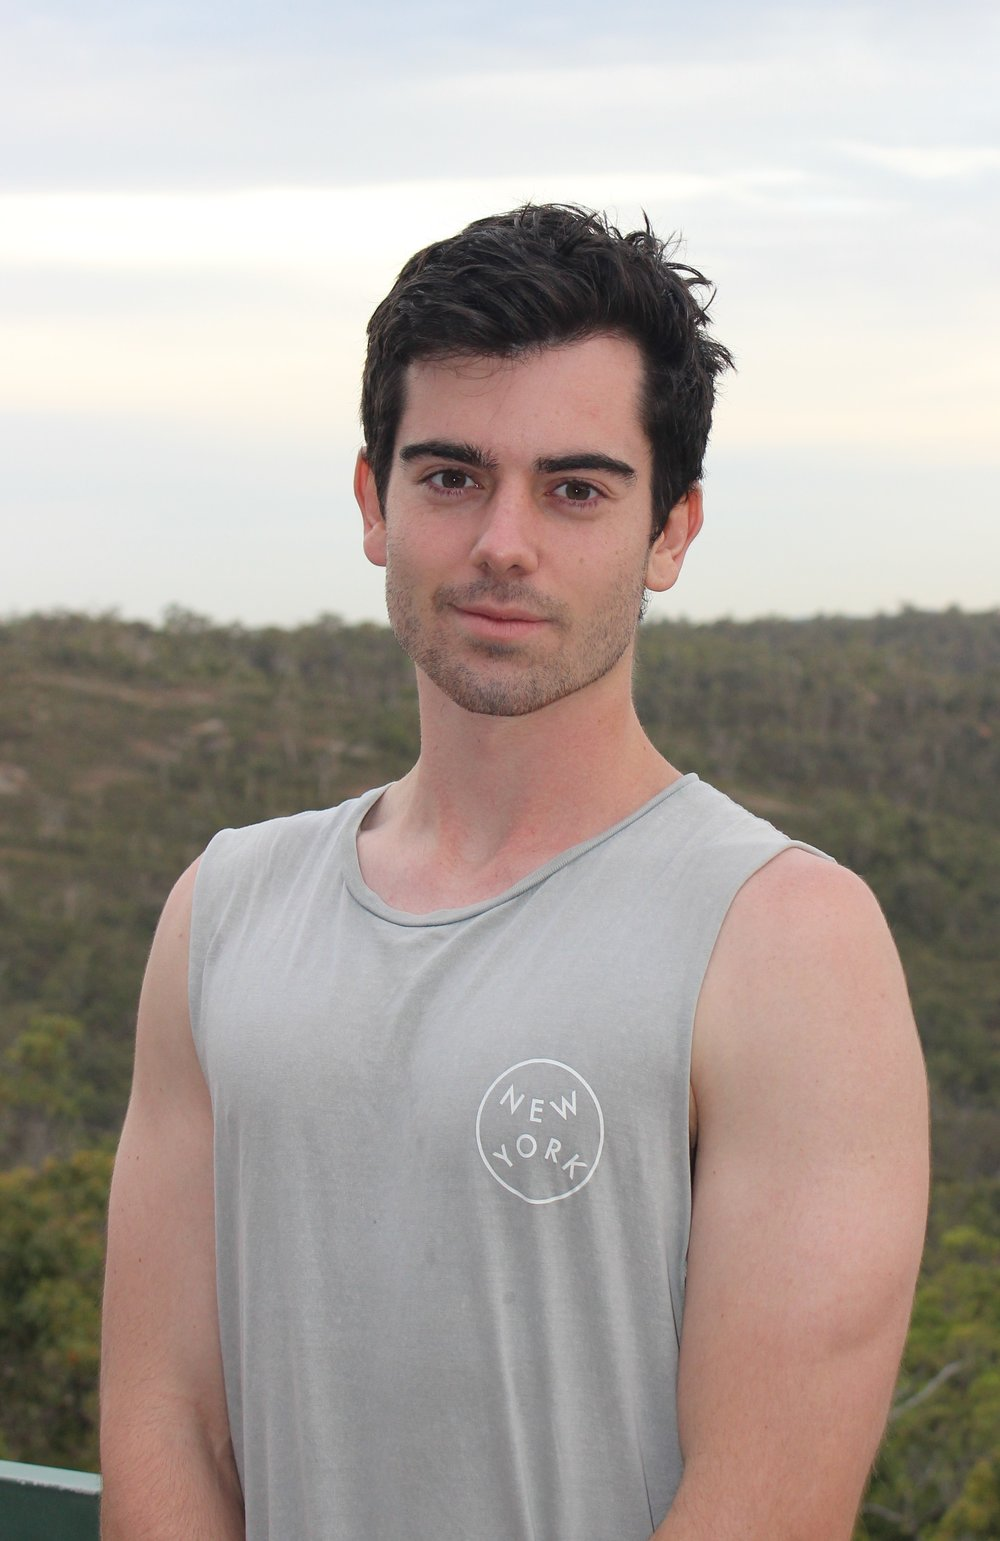 I enjoy riding BMX, snowboarding and pushing the limits on my skateboard. I spent my high school years in Collie before moving to St George's to begin studying in Perth. In 2018 I will start my Medicine degree and I am looking forward to all the exciting things I will be learning. I have learnt a lot while living at College and I hope I will be able to help others grow and learn like I have over the last three years in this amazing place.